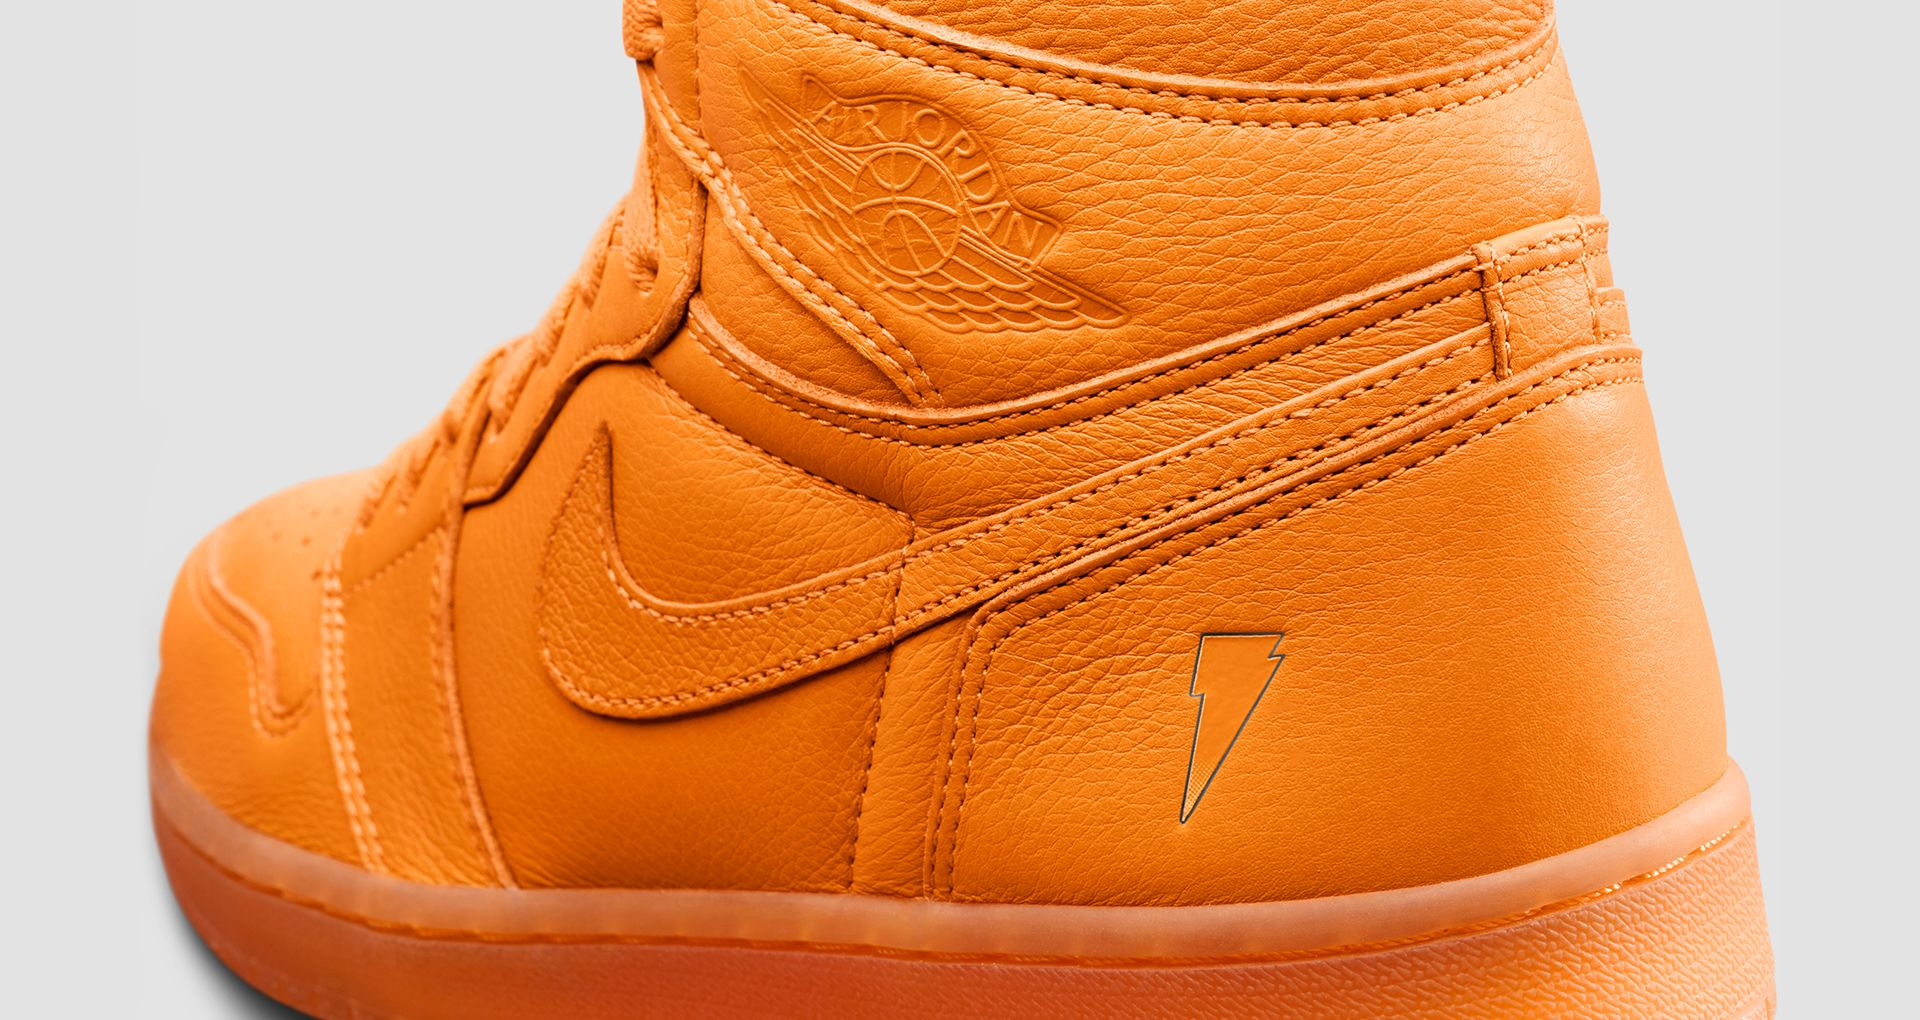 423ef1804803f6 The Air Jordan I  Orange  from the set is inspired by the classic Citrus  Cooler flavour of Gatorade. The sneaker features iconic Wings branding